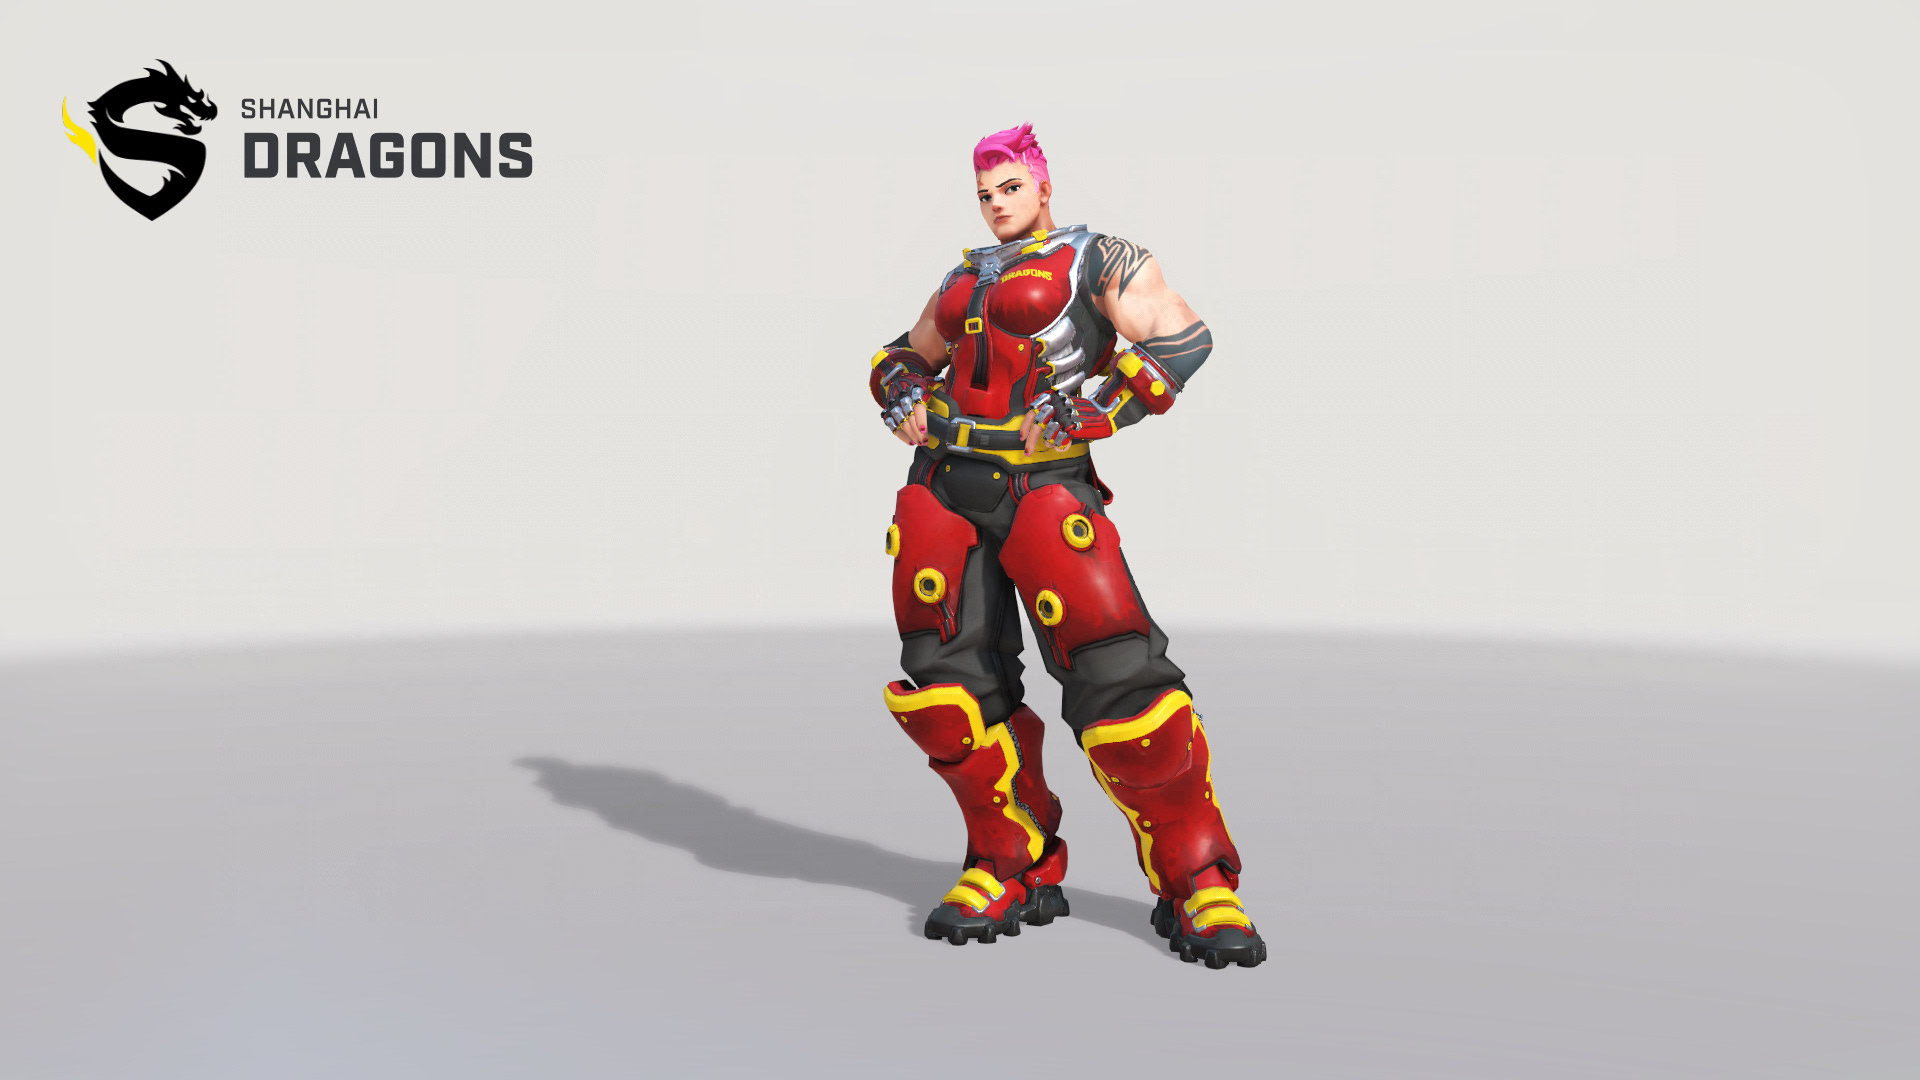 Geguri reportedly set to join Shanghai Dragons and become first woman in Overwatch League